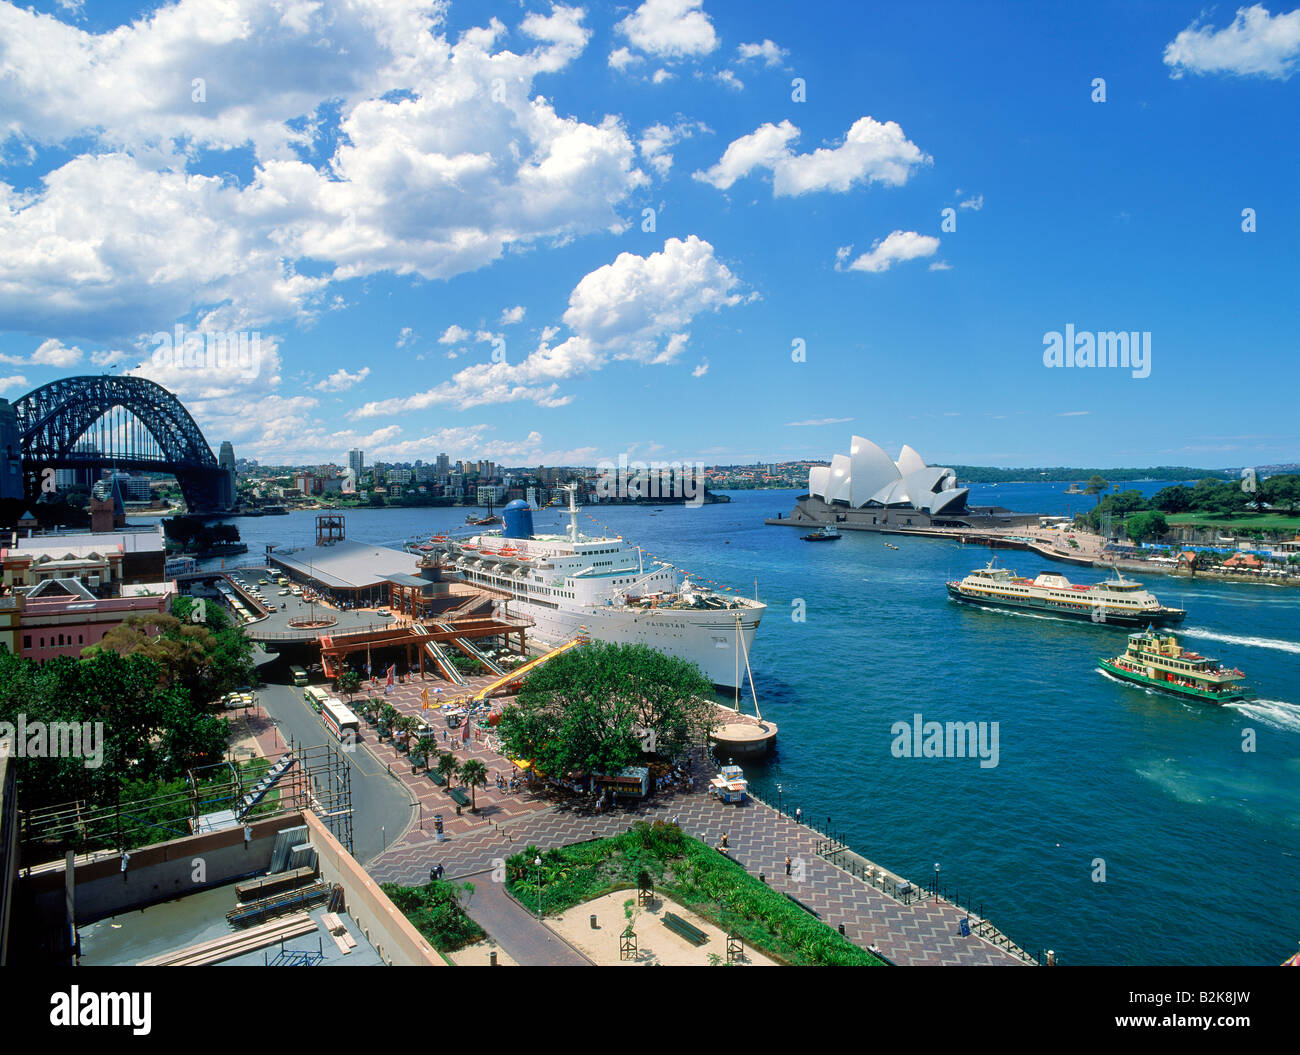 Passenger ship and ferryboats at the Sydney Harbor Quay with Opera House - Stock Image